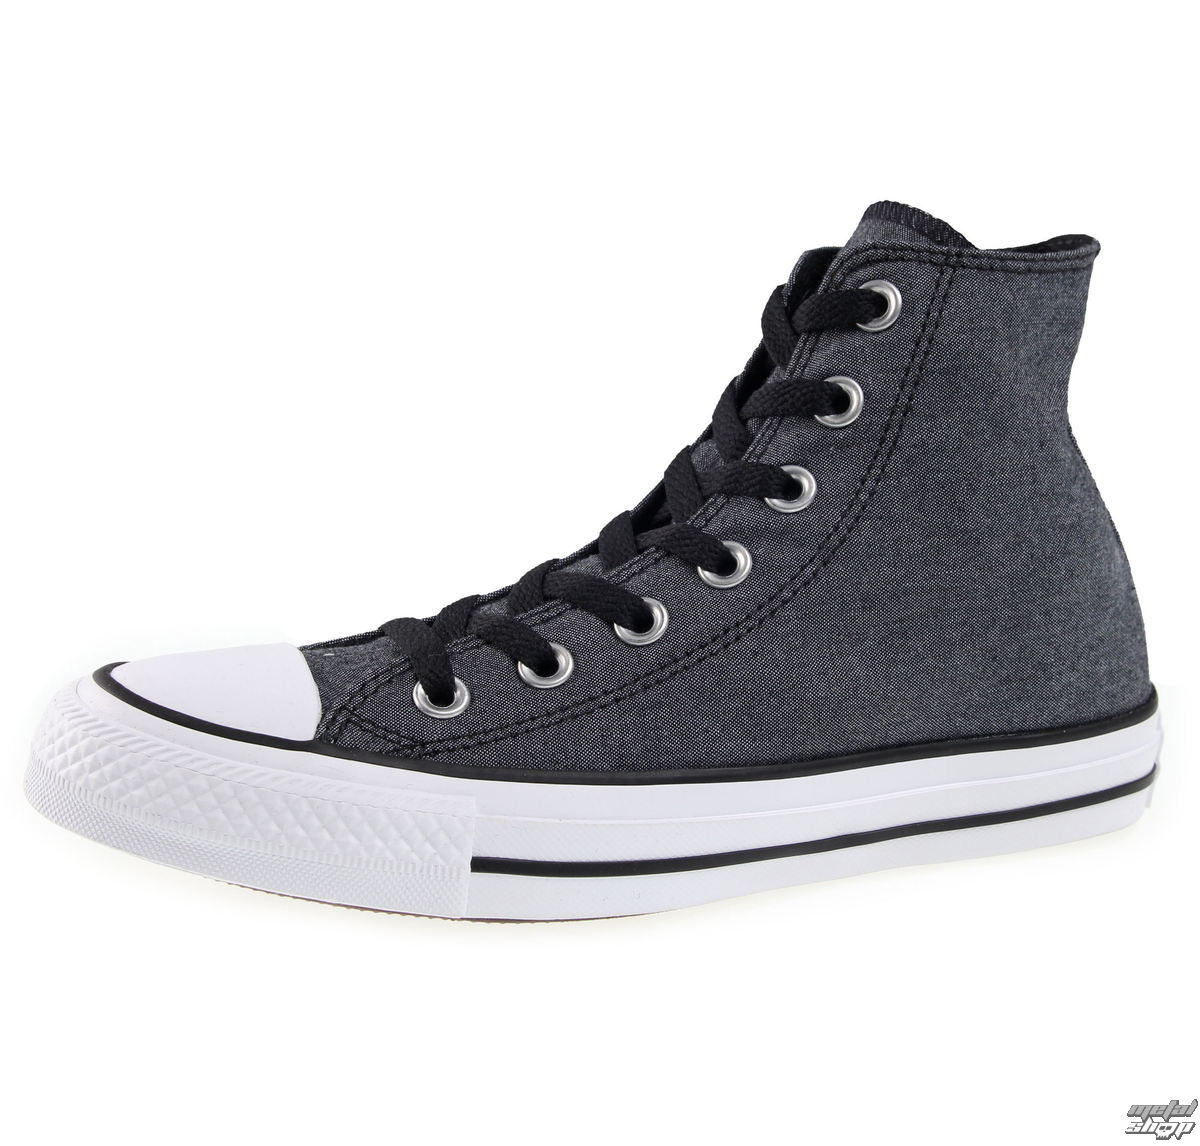 topánky CONVERSE - Chuck Taylor All Star - C155386